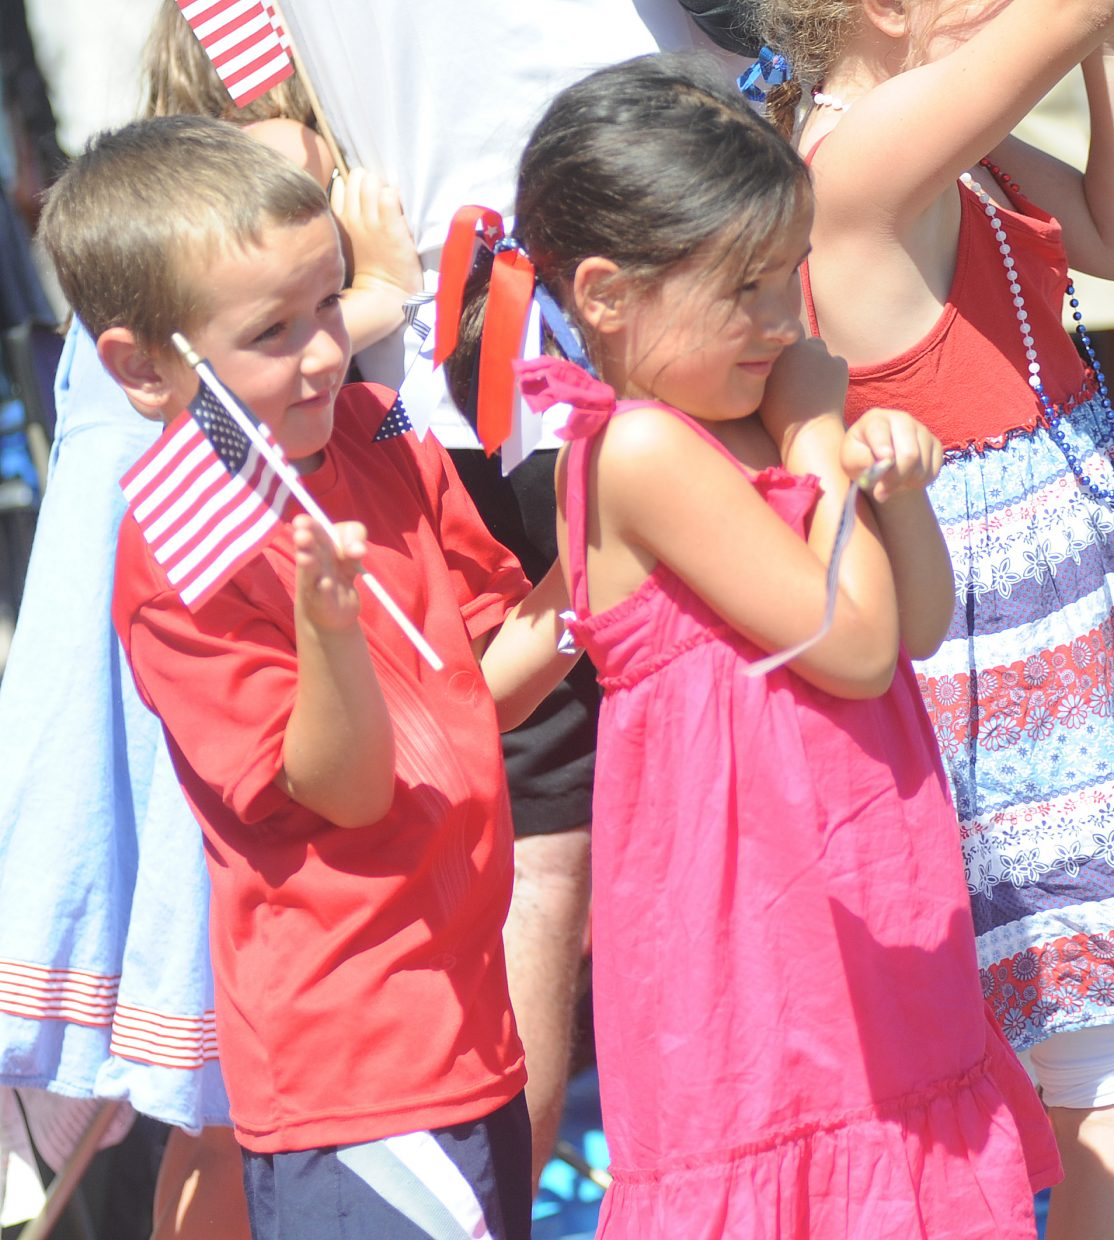 Brett McGraw hides behind his cousin Avery McGraw as the crowd is sprayed on Sunday during the Fourth of July parade in downtown Steamboat Springs.